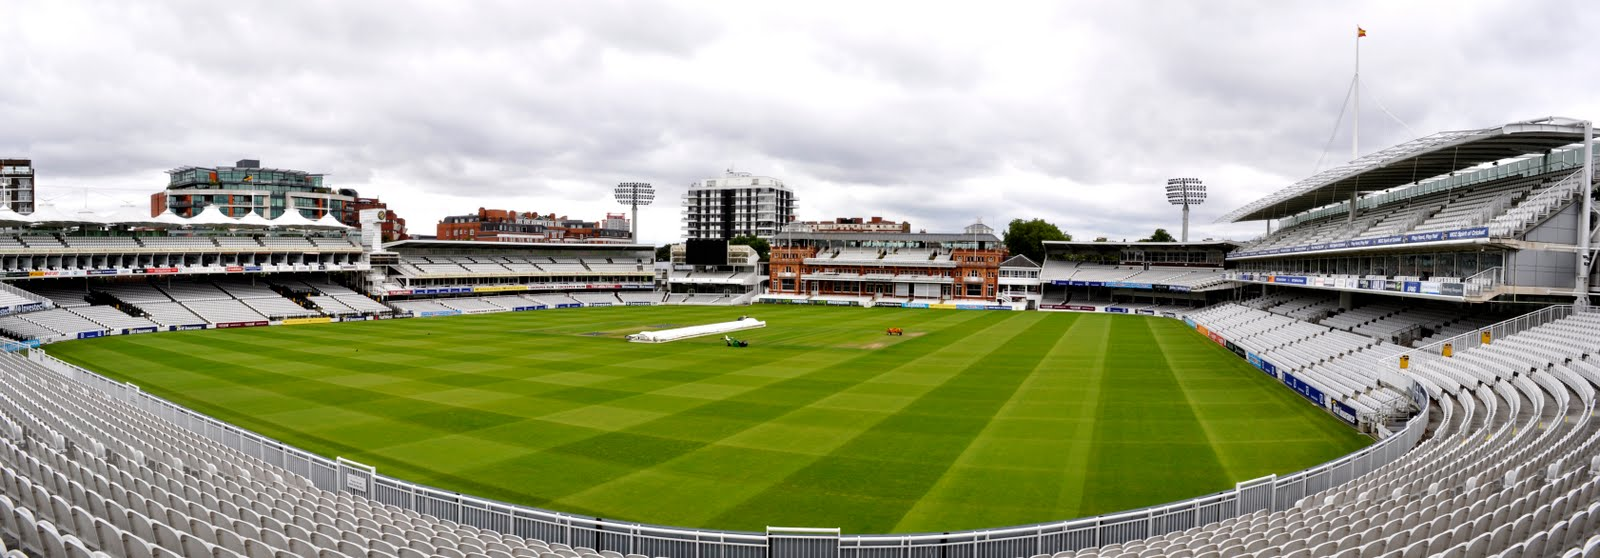 Lord's Cricket Ground - What's On - visitlondon.com